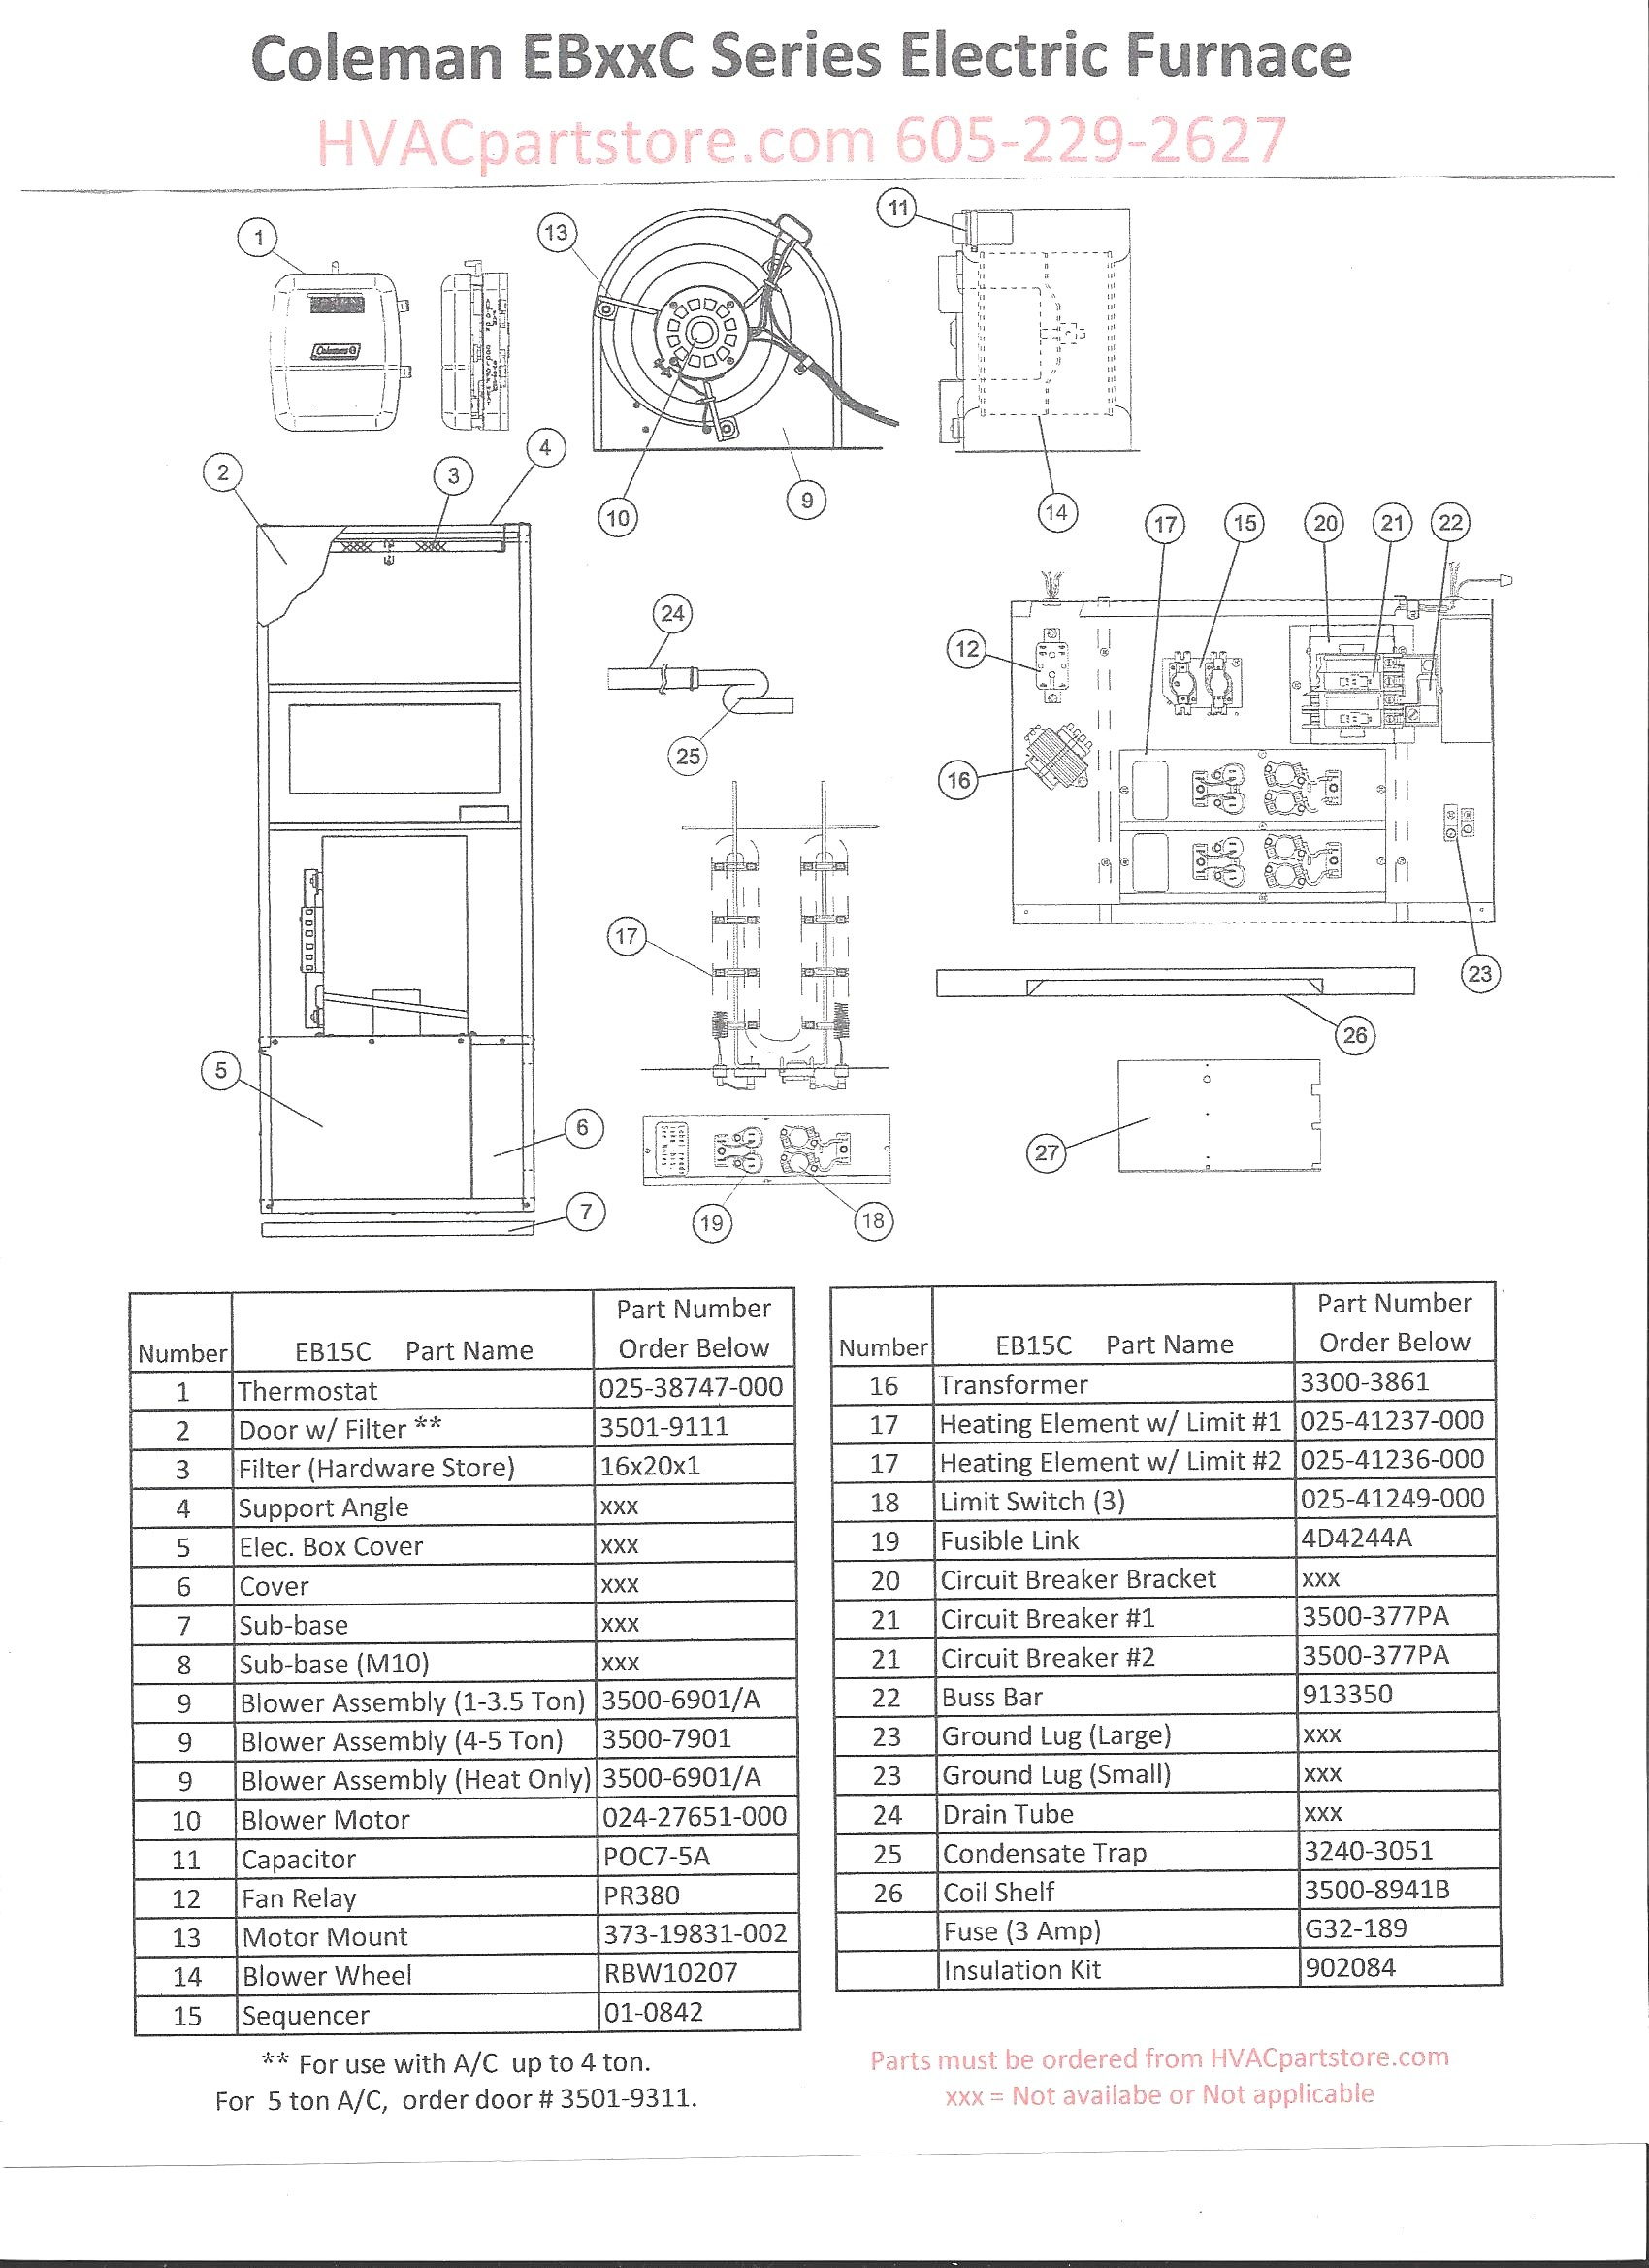 eb15b wiring diagram Download-central electric furnace model eb15b wiring diagram new coleman electric furnace wiring diagram inside evcon for 7-l